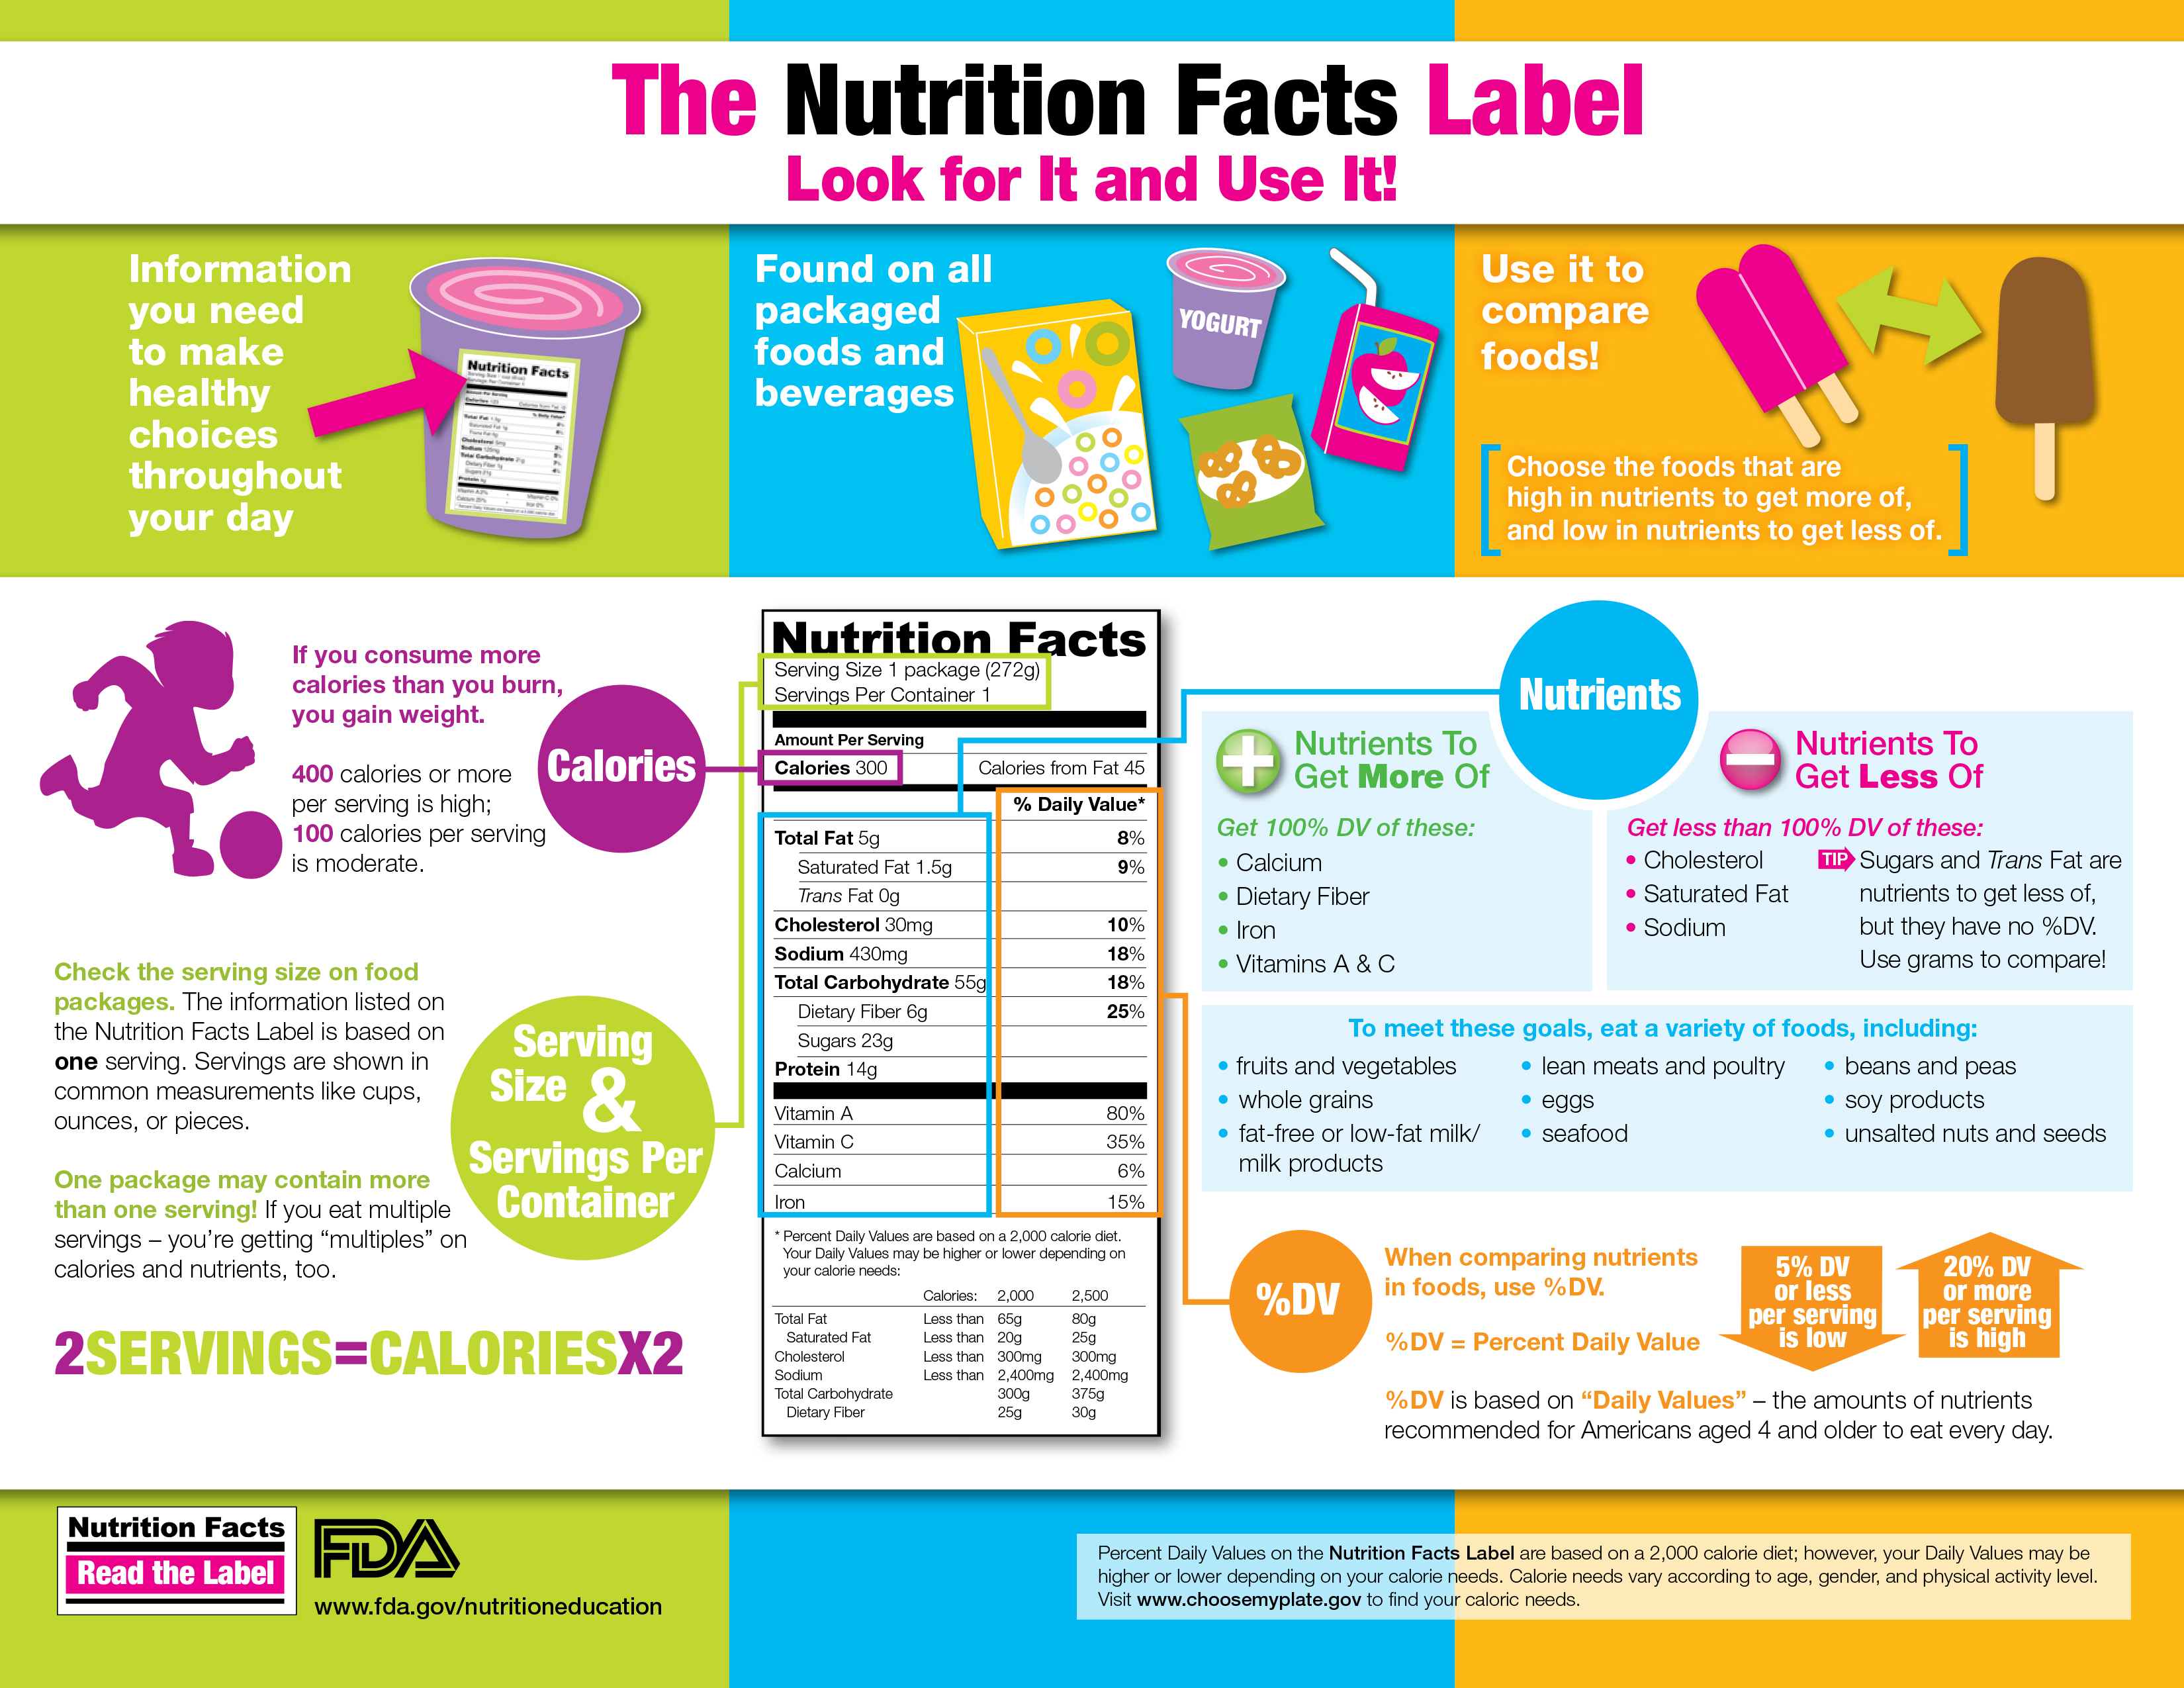 The Nutrition Facts Label Can Help Young People Make